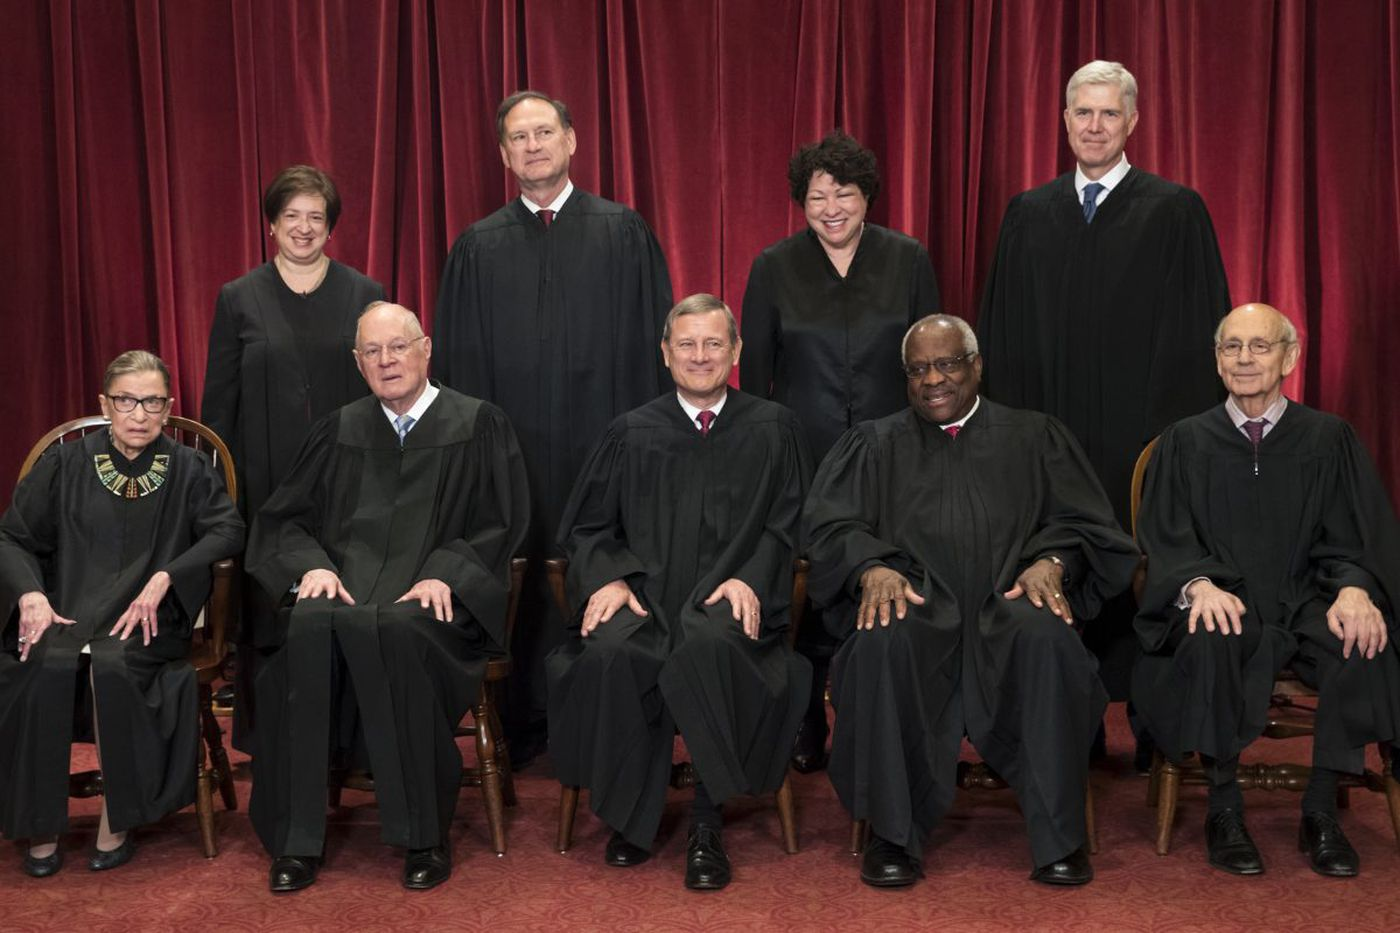 U.S. Supreme Court to Pa.: Quit the clowning and draw fair congressional districts| Editorial